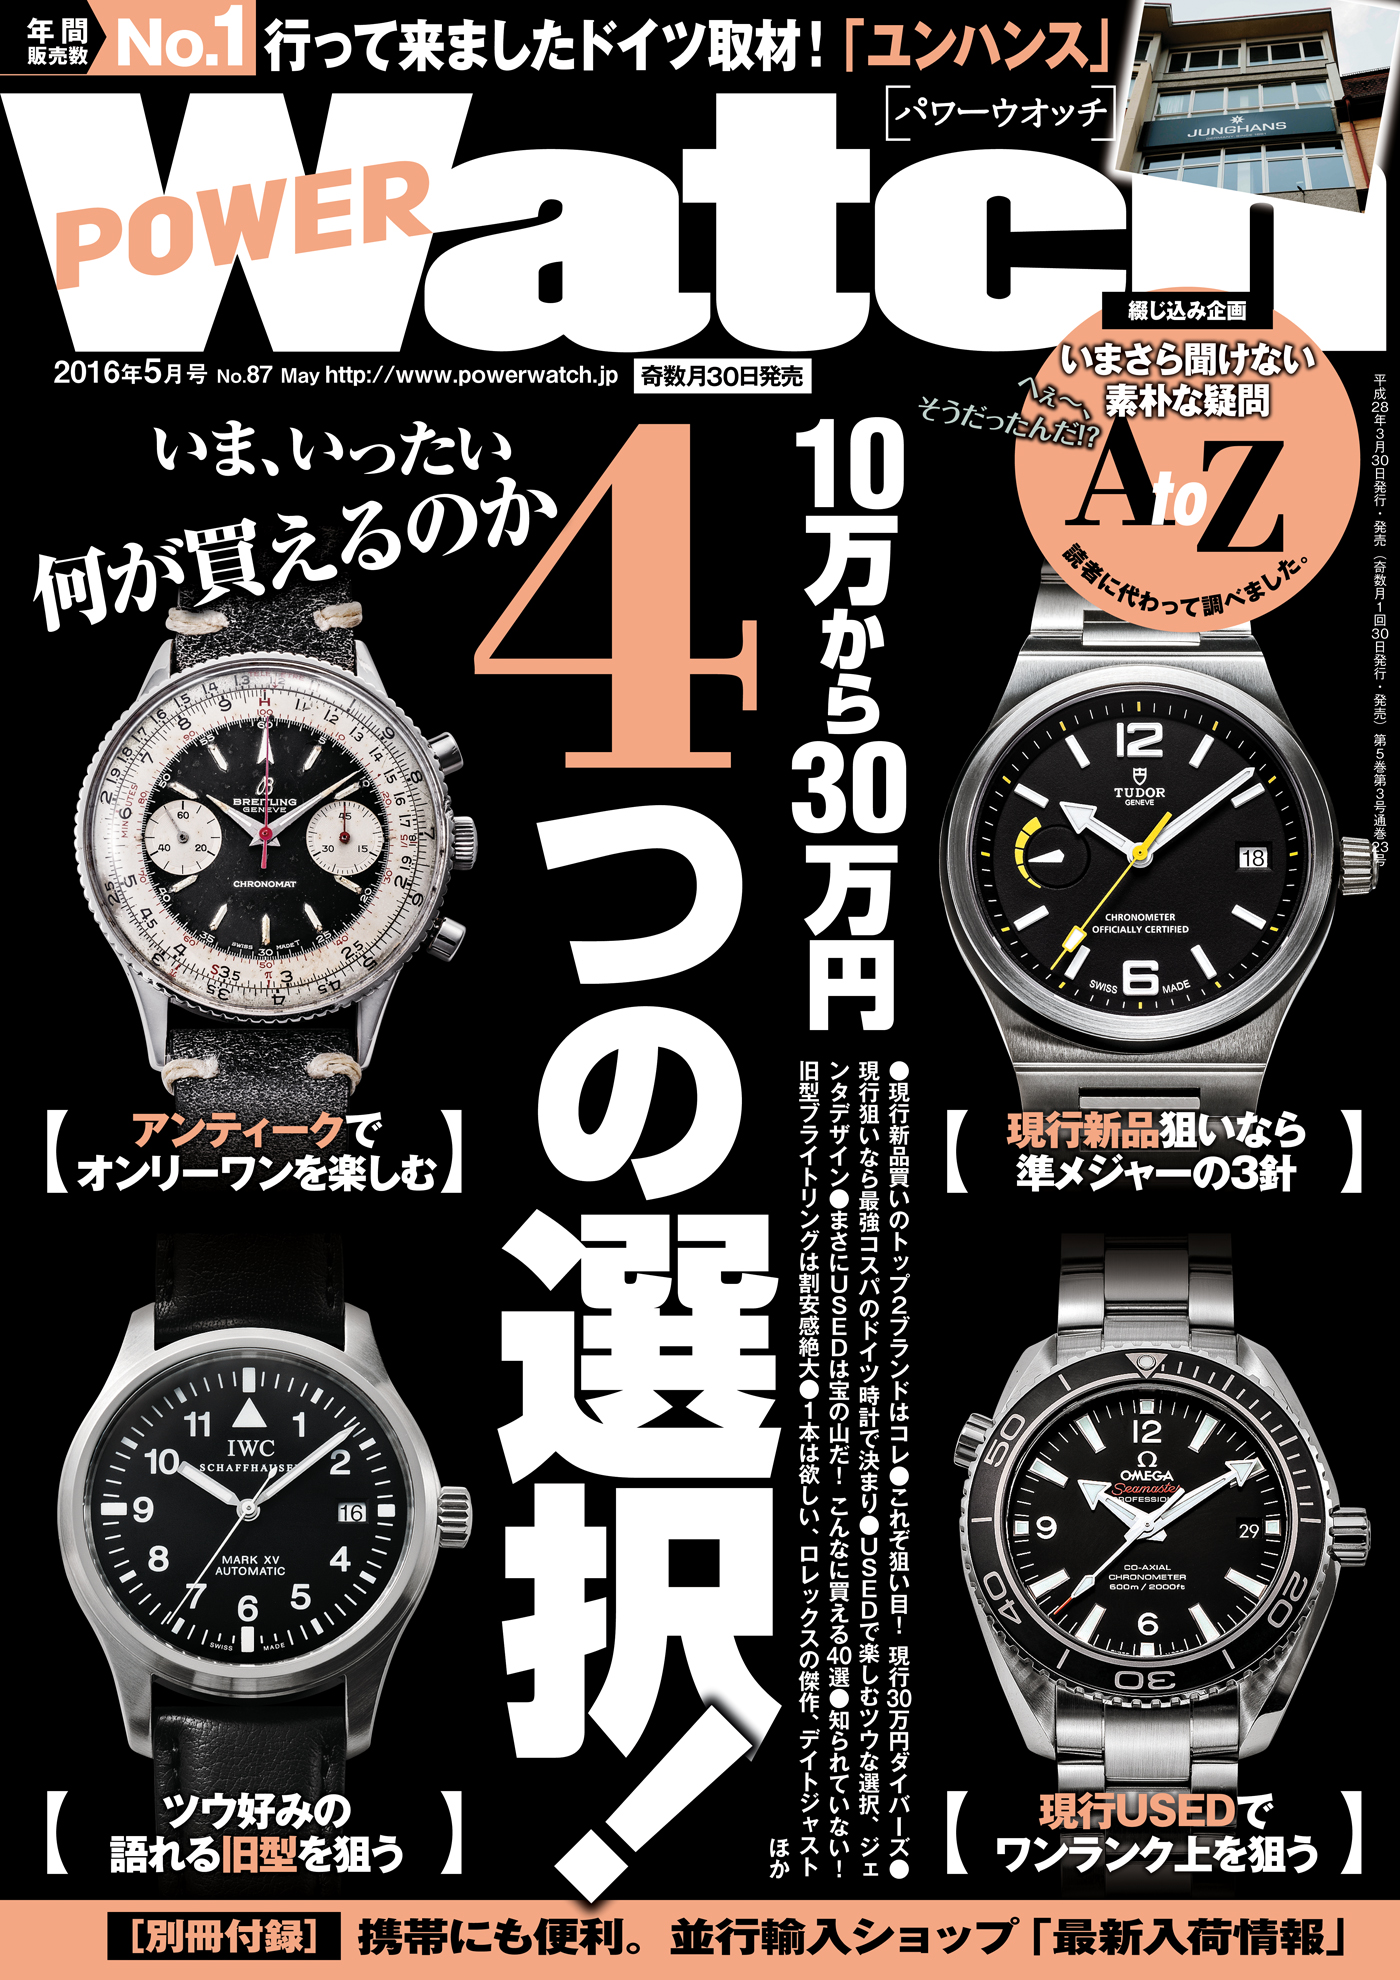 C's-Factory|電子書籍|POWER Watch No.87